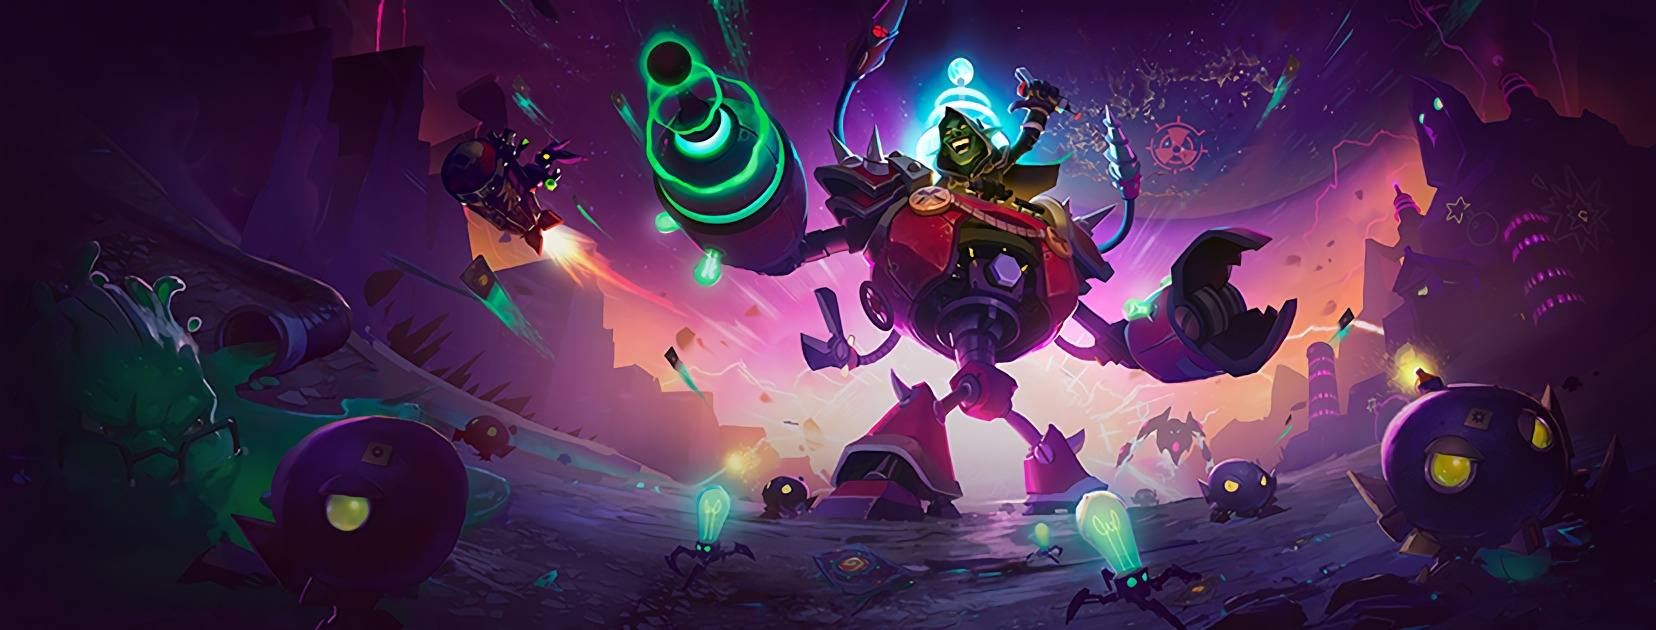 Hearthstone: The Boomsday Project: Official Twitch card reveal livestream with Brian Kibler and Peter Whalen